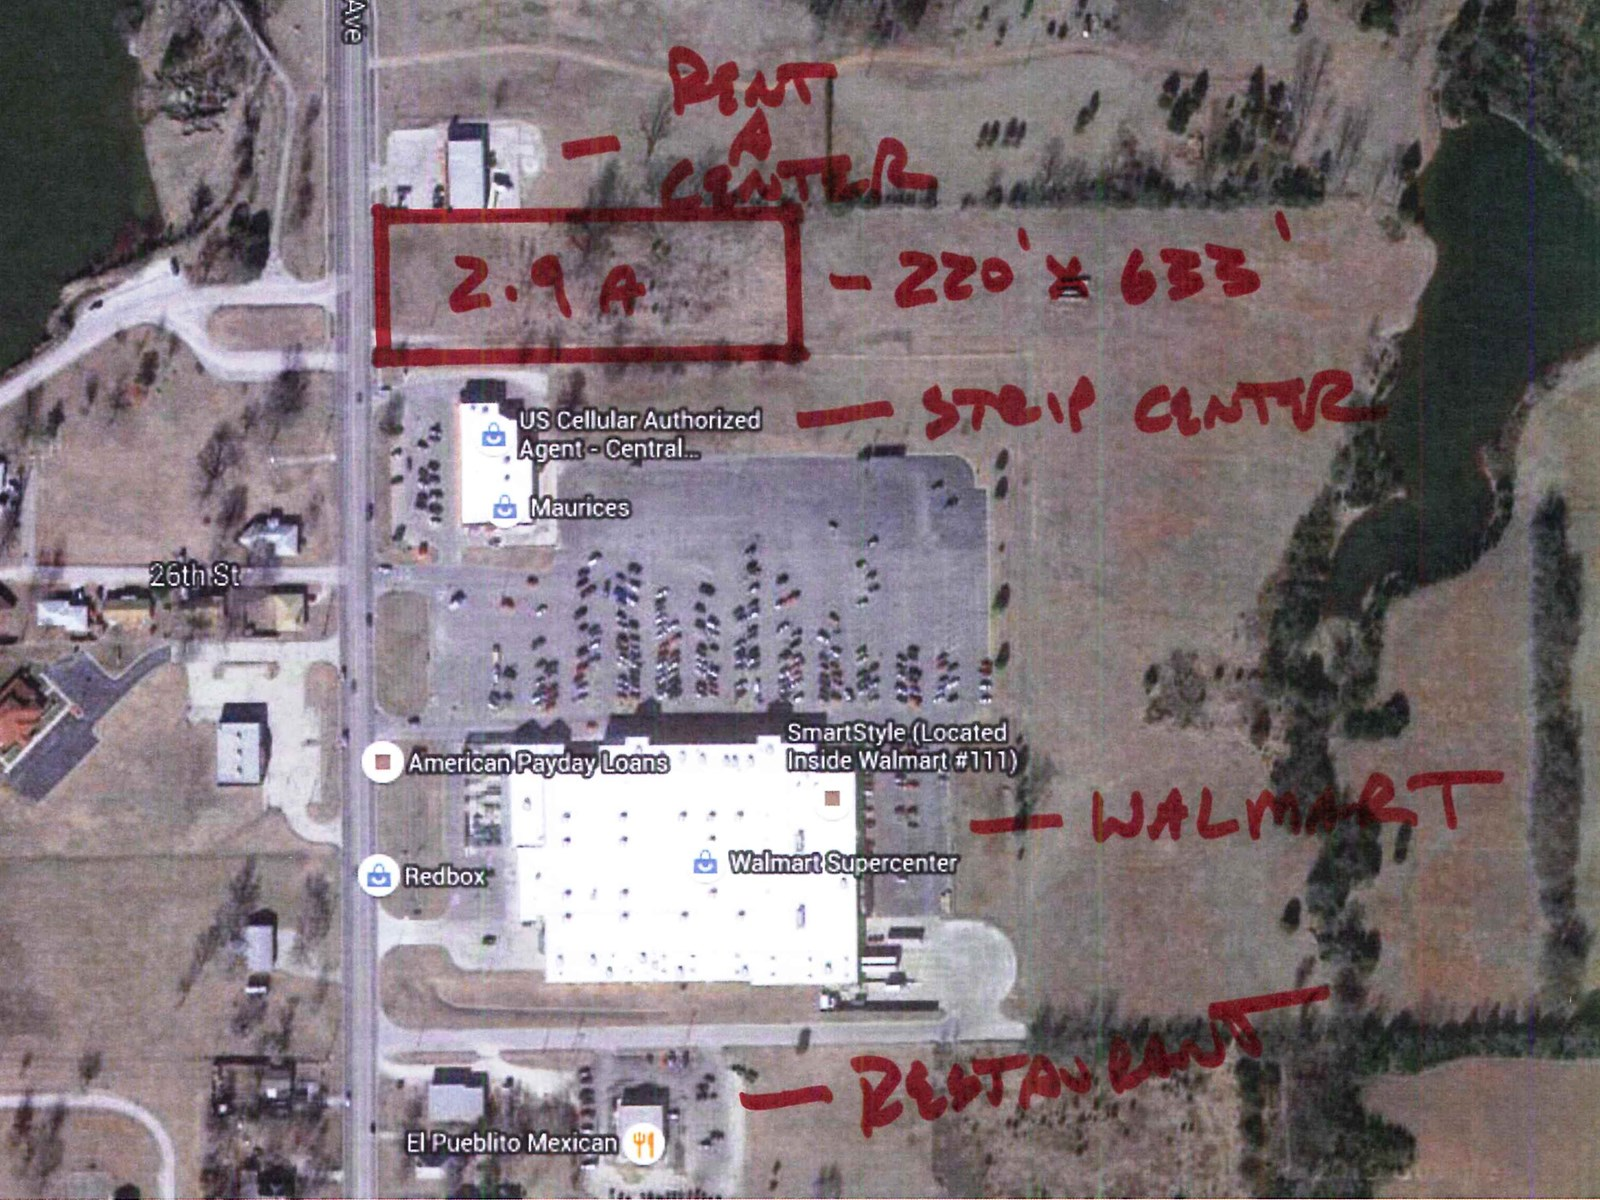 Commercial Land for Sale in Chanute Kansas